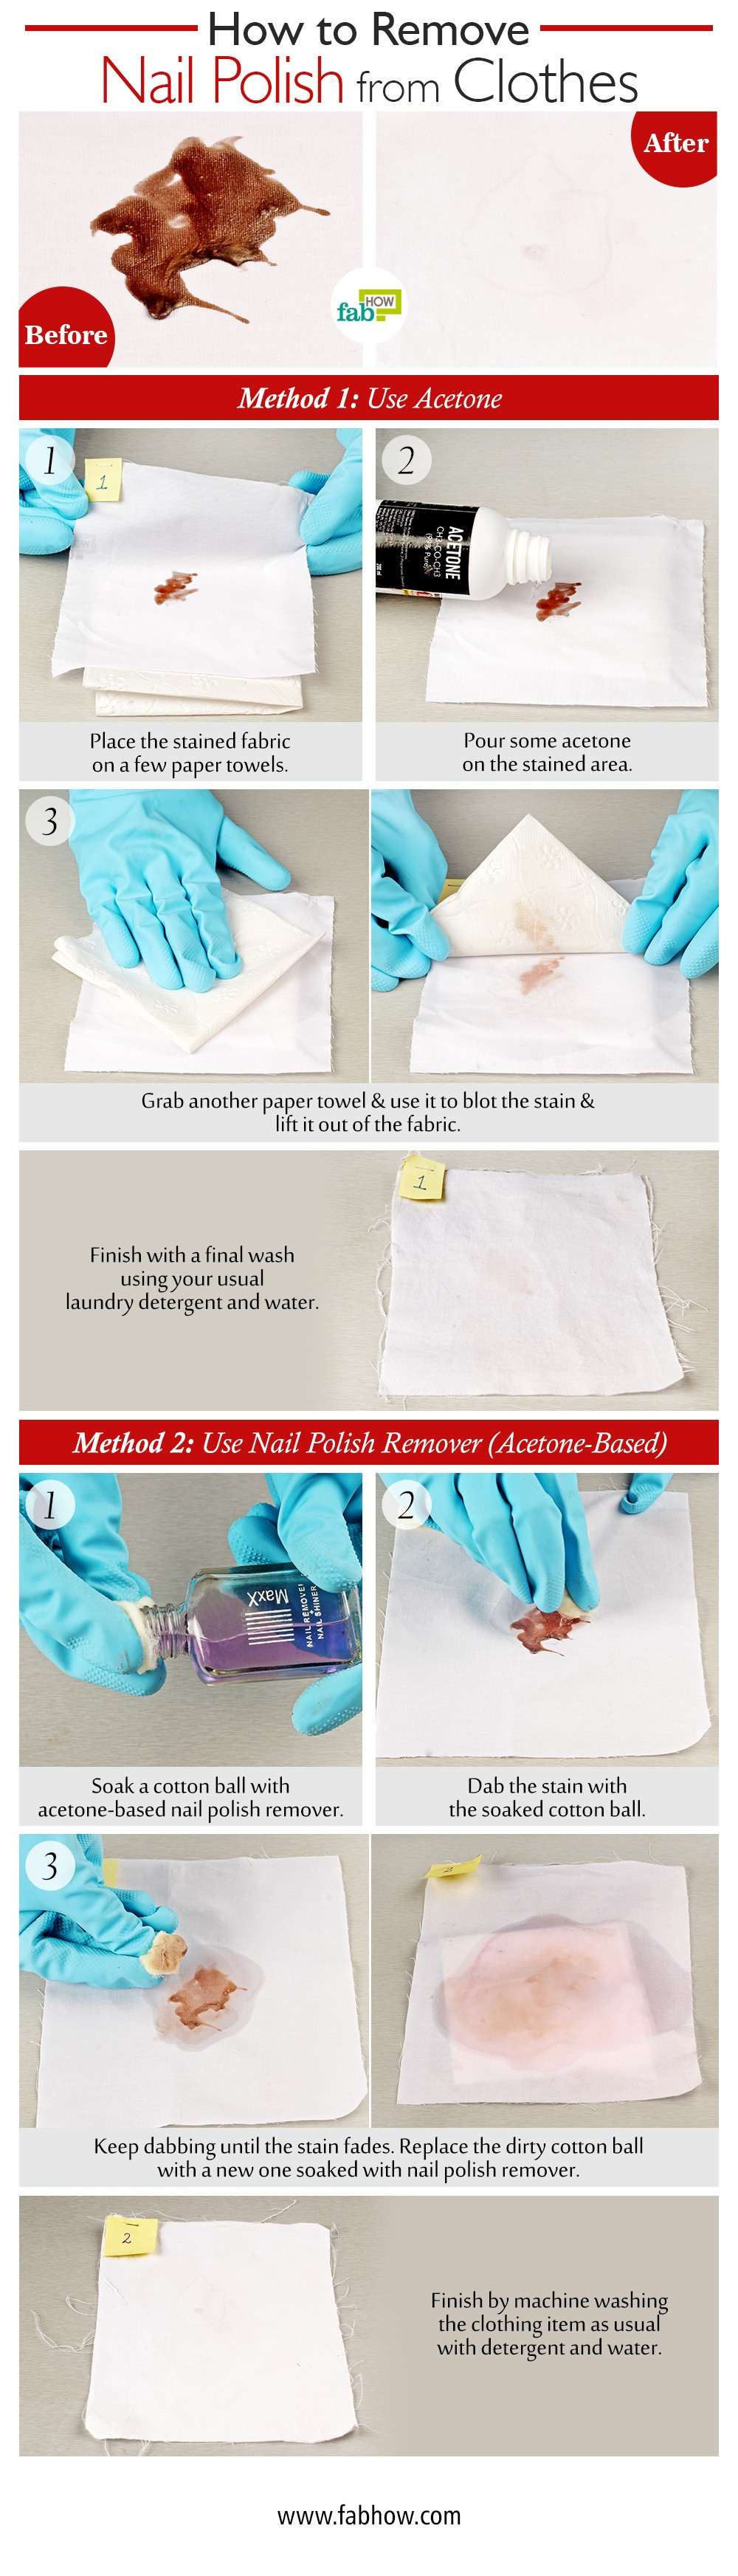 How to Remove Nail Polish from Clothes | Fab How